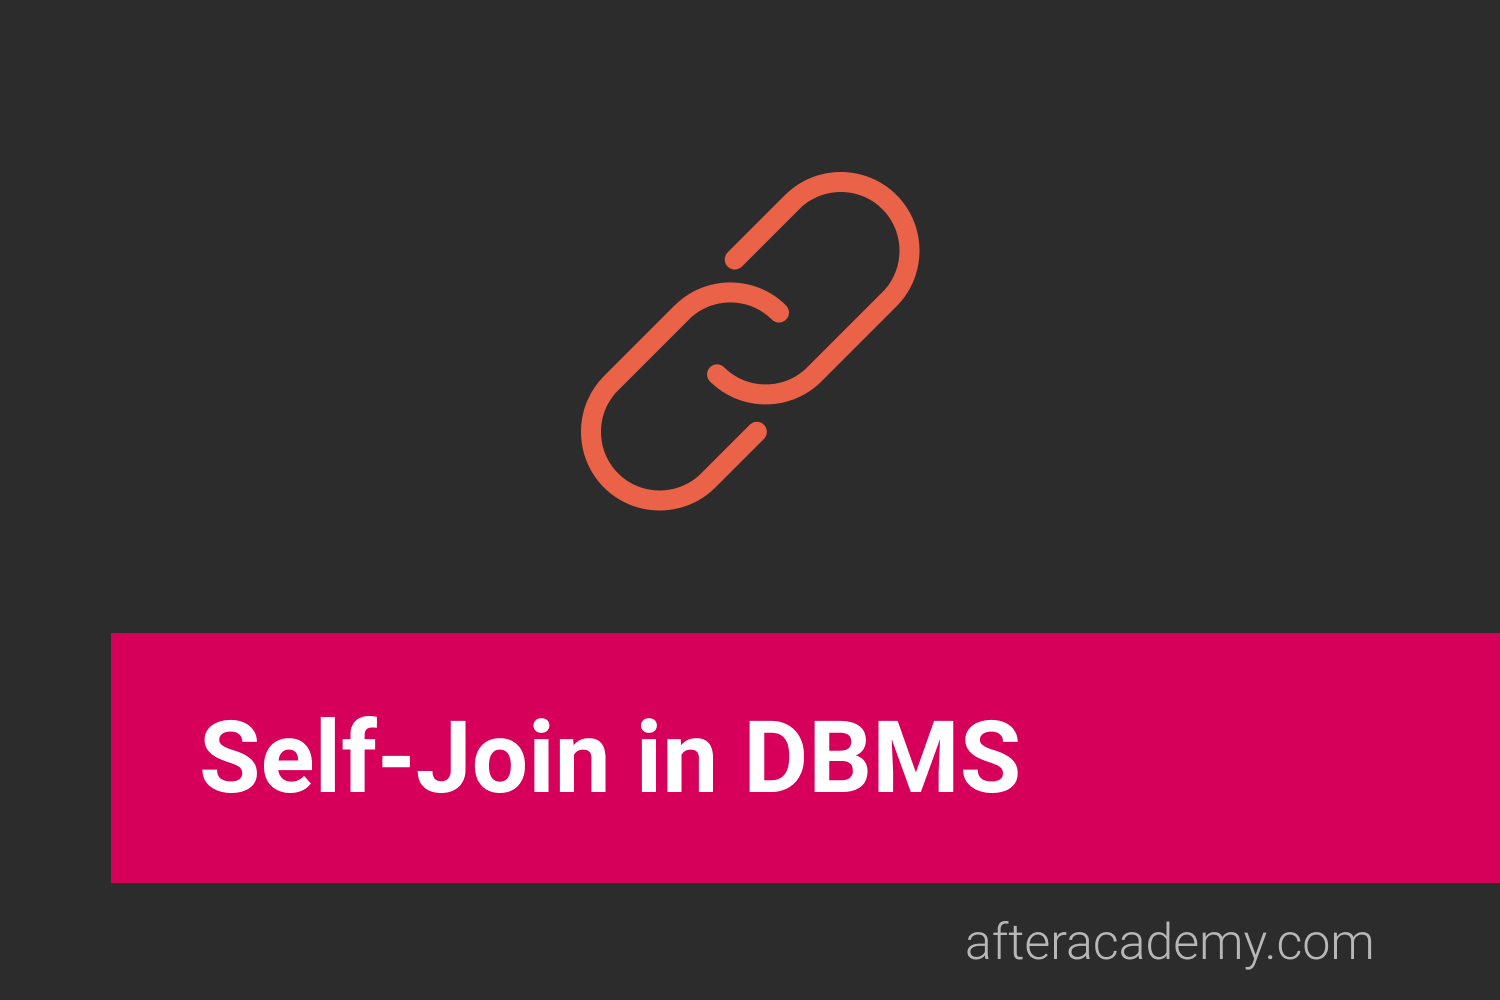 What is Self-Join in DBMS?